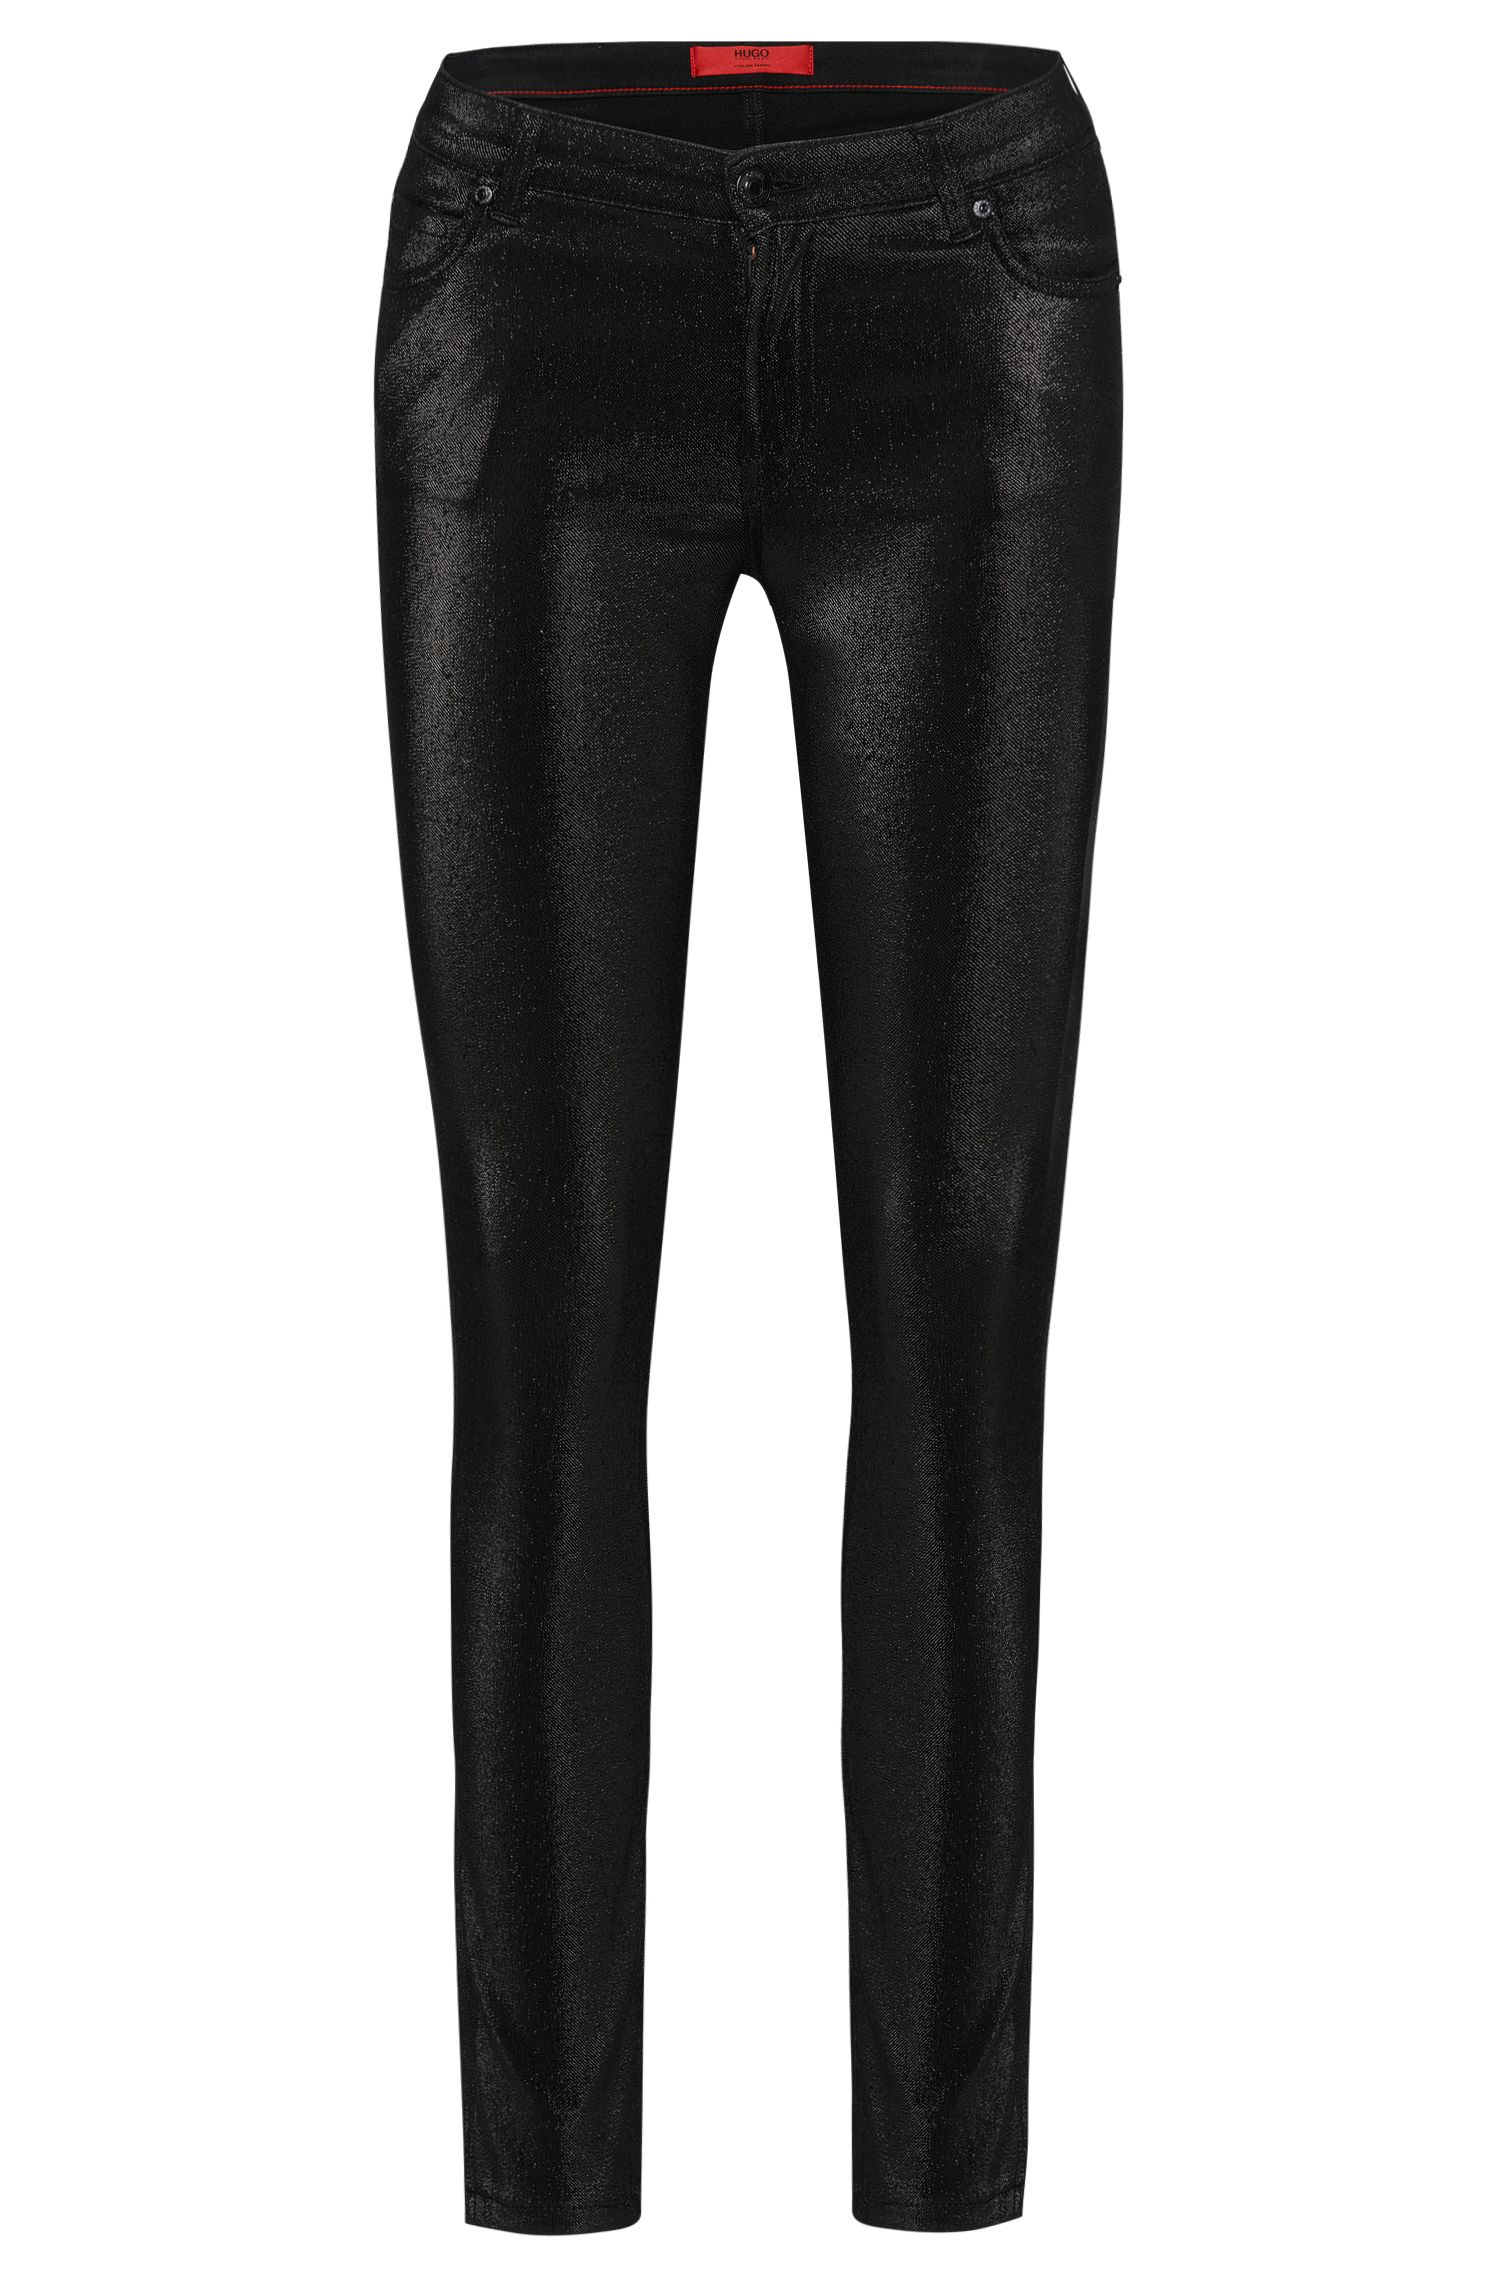 Super Skinny-Fit Jeans aus Baumwoll-Mix im Metallic-Look: 'Georgina'